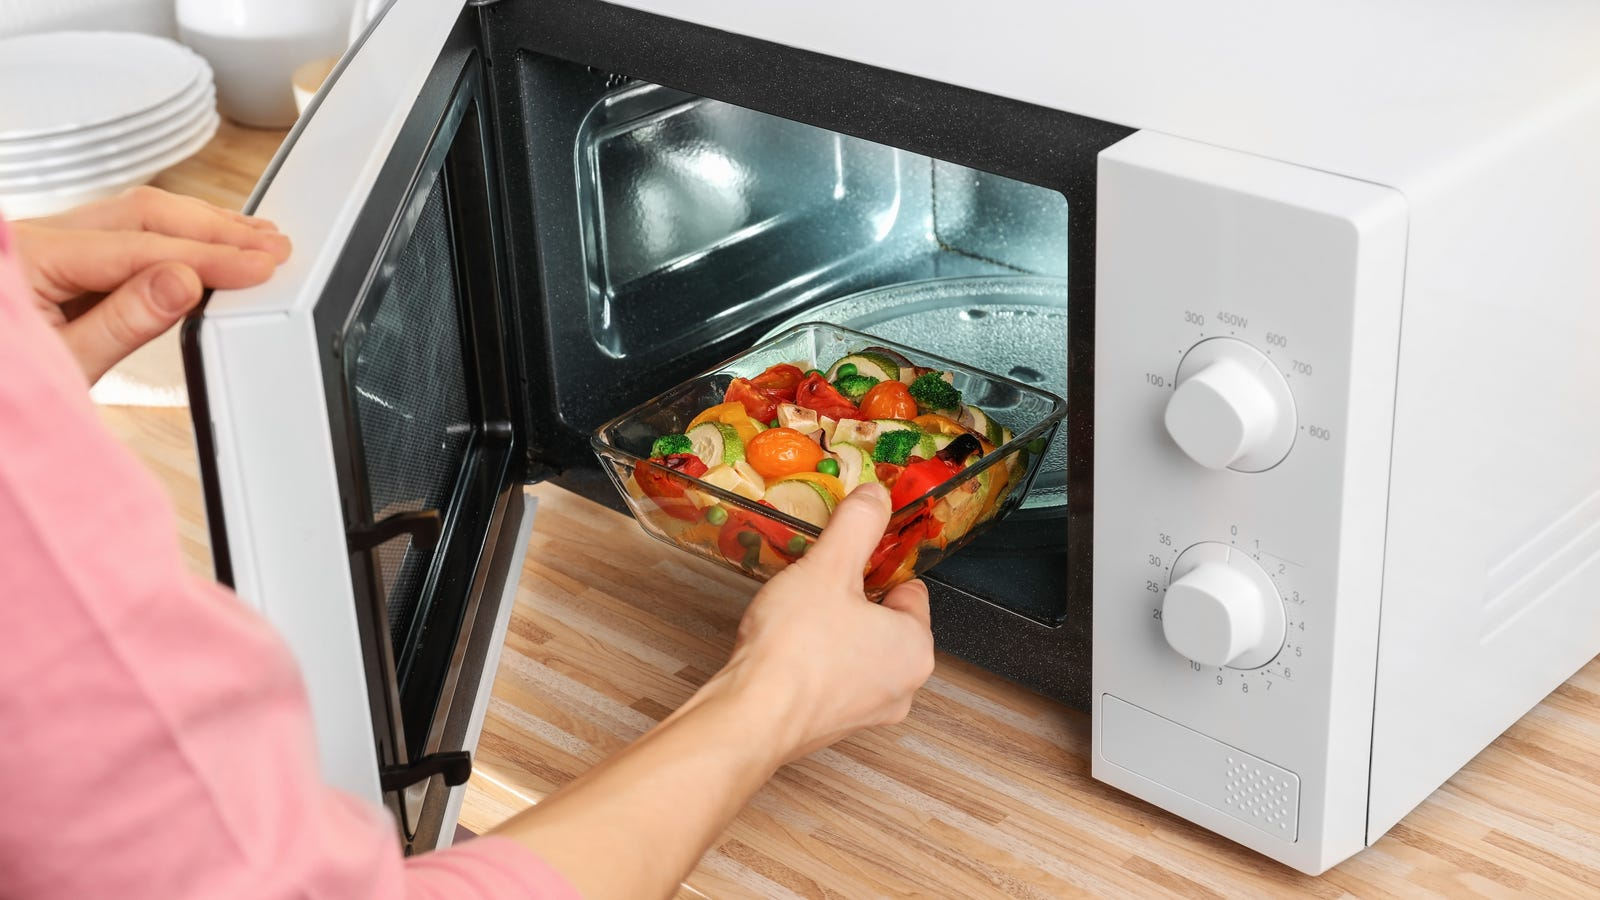 A person placing food in the microwave, to try and reheat and kill the bacteria groth for safe eating.